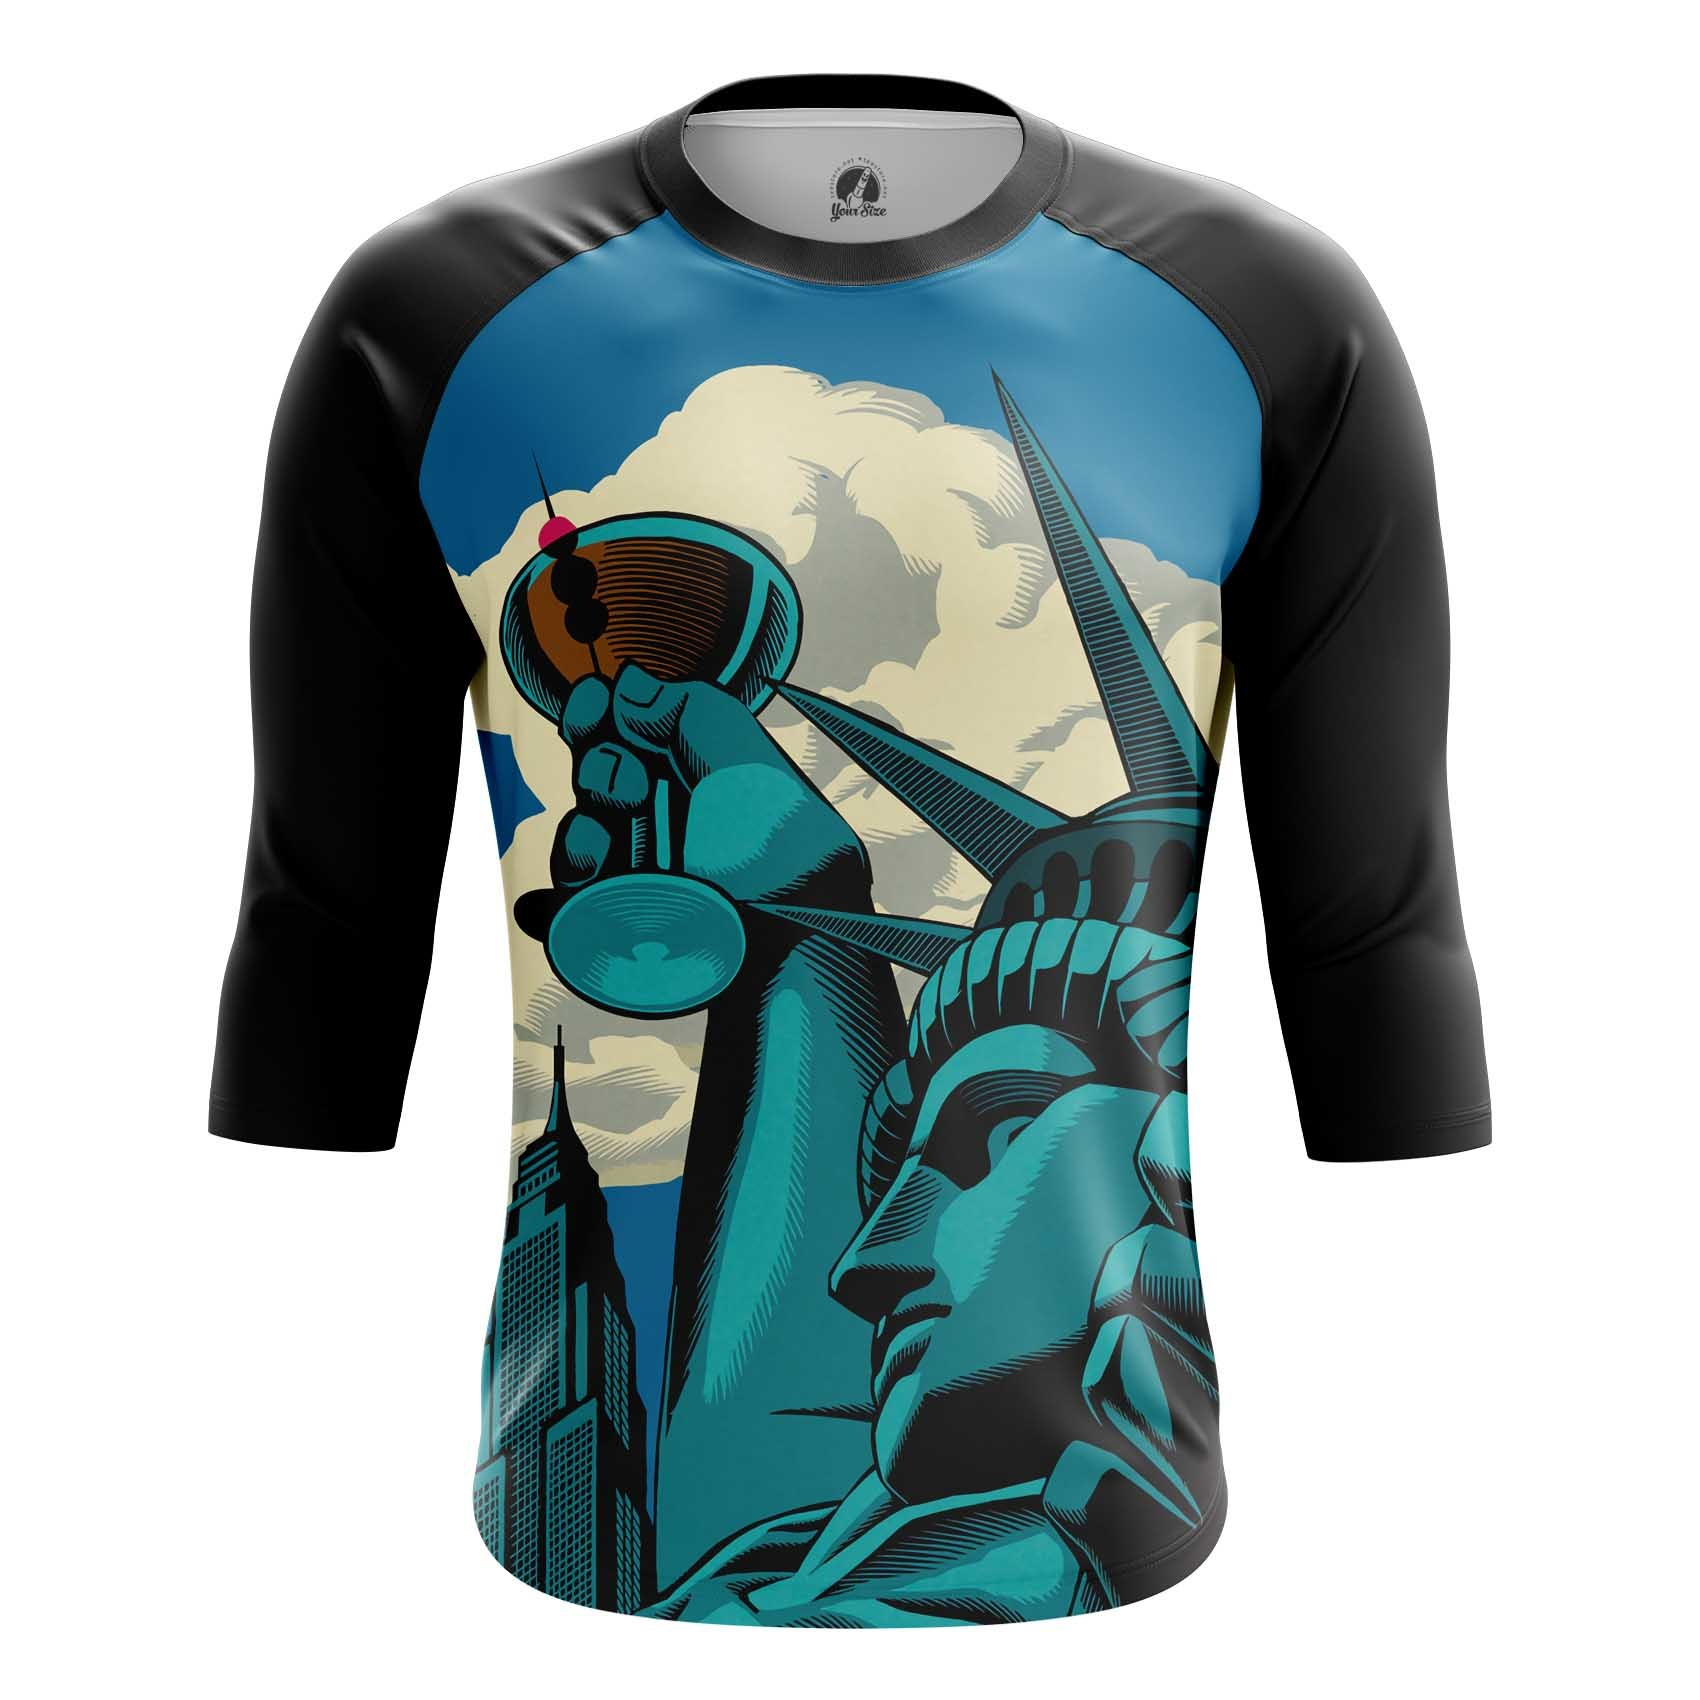 Merchandise T-Shirt Statue Of Liberty Web Art Inspired Have A Drink Vine